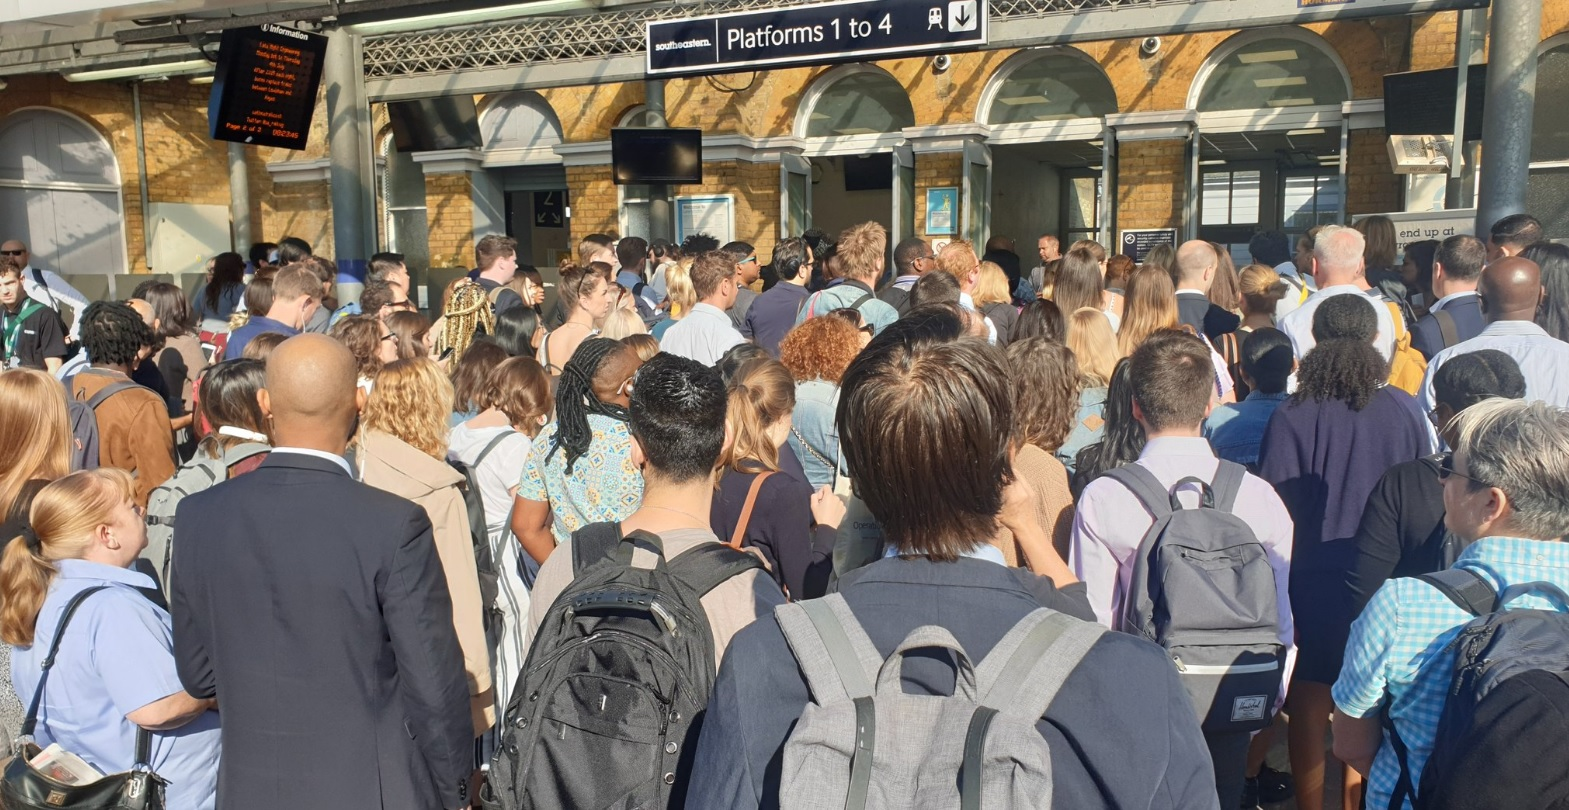 Lewisham station's one-way system in for criticism as overcrowding hits